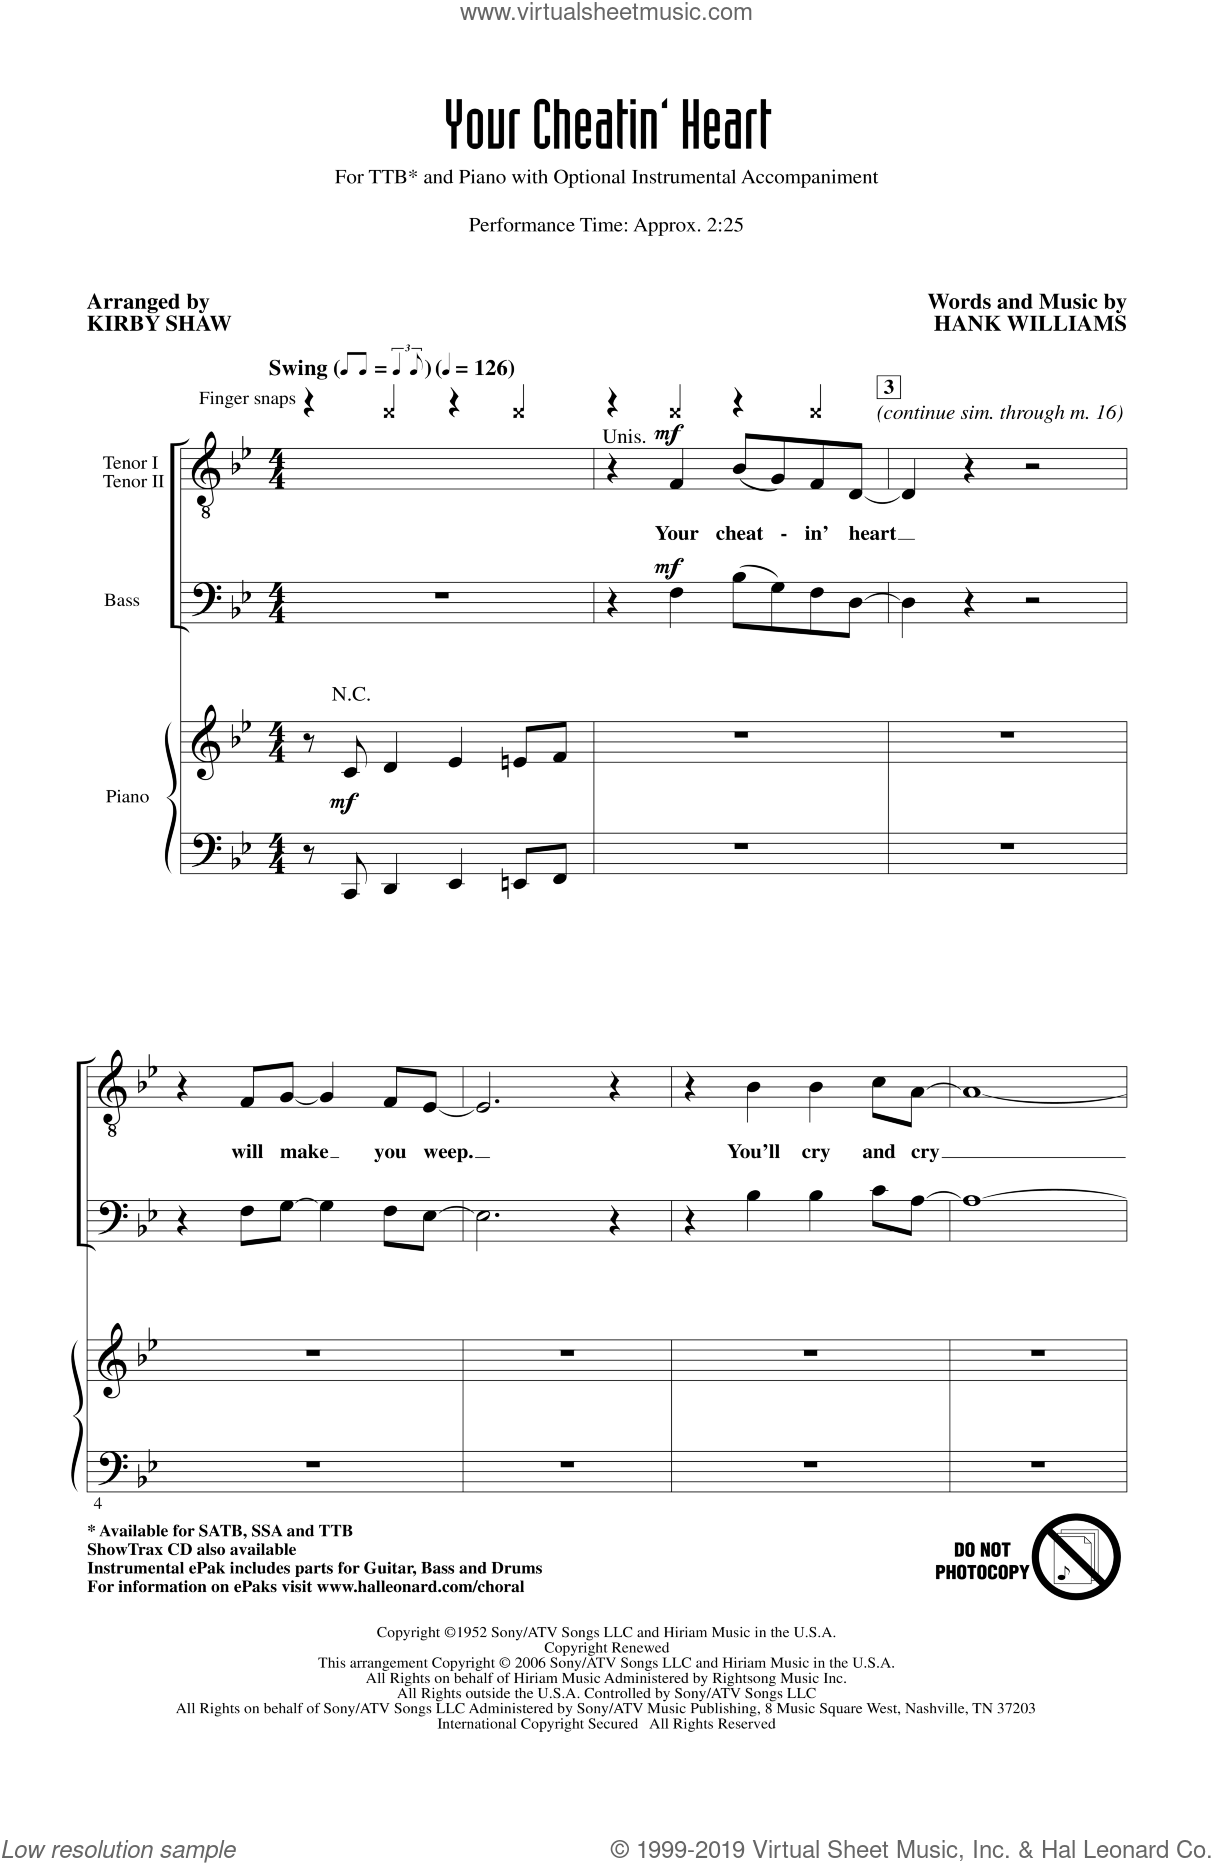 Your Cheatin' Heart sheet music for choir (TTBB: tenor, bass) by Hank Williams, Kirby Shaw and Patsy Cline, intermediate